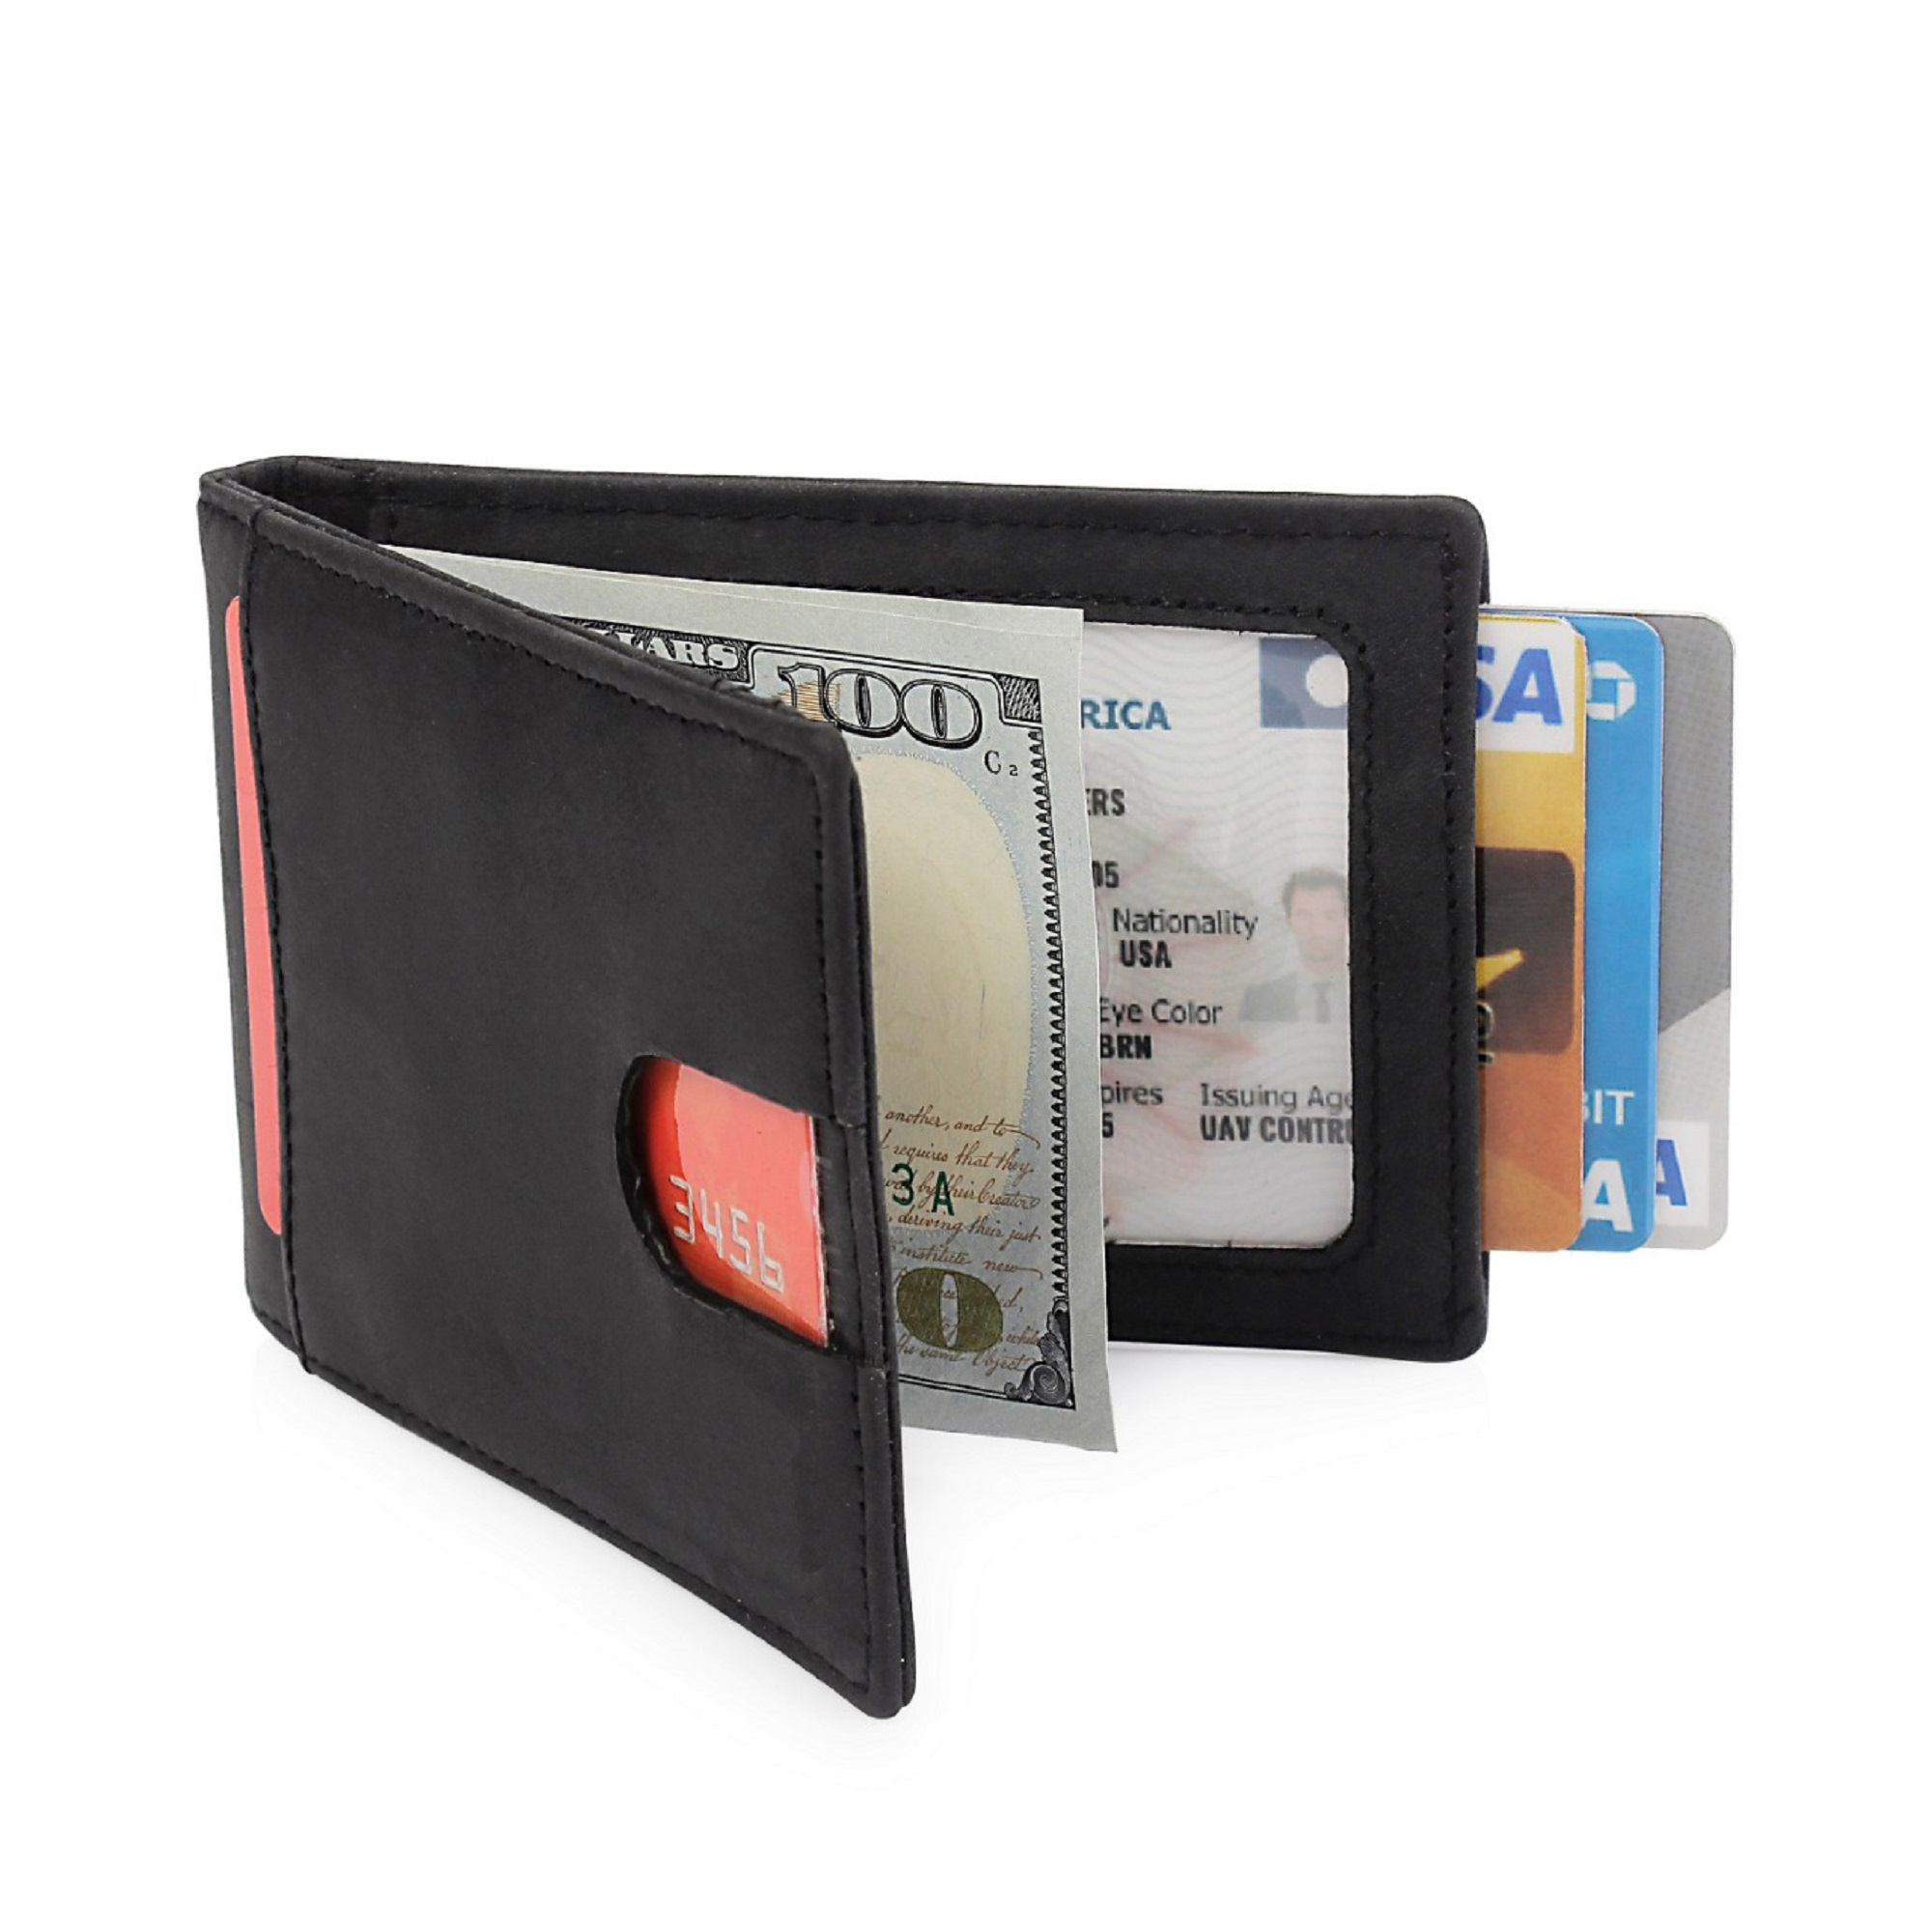 Leather Money Clip Wallet Manufacturers In Ontario, Money Clip Wallet Suppliers In Ontario, Money Clip Wallet Wholesalers In Ontario, Money Clip Wallet Traders In Ontario